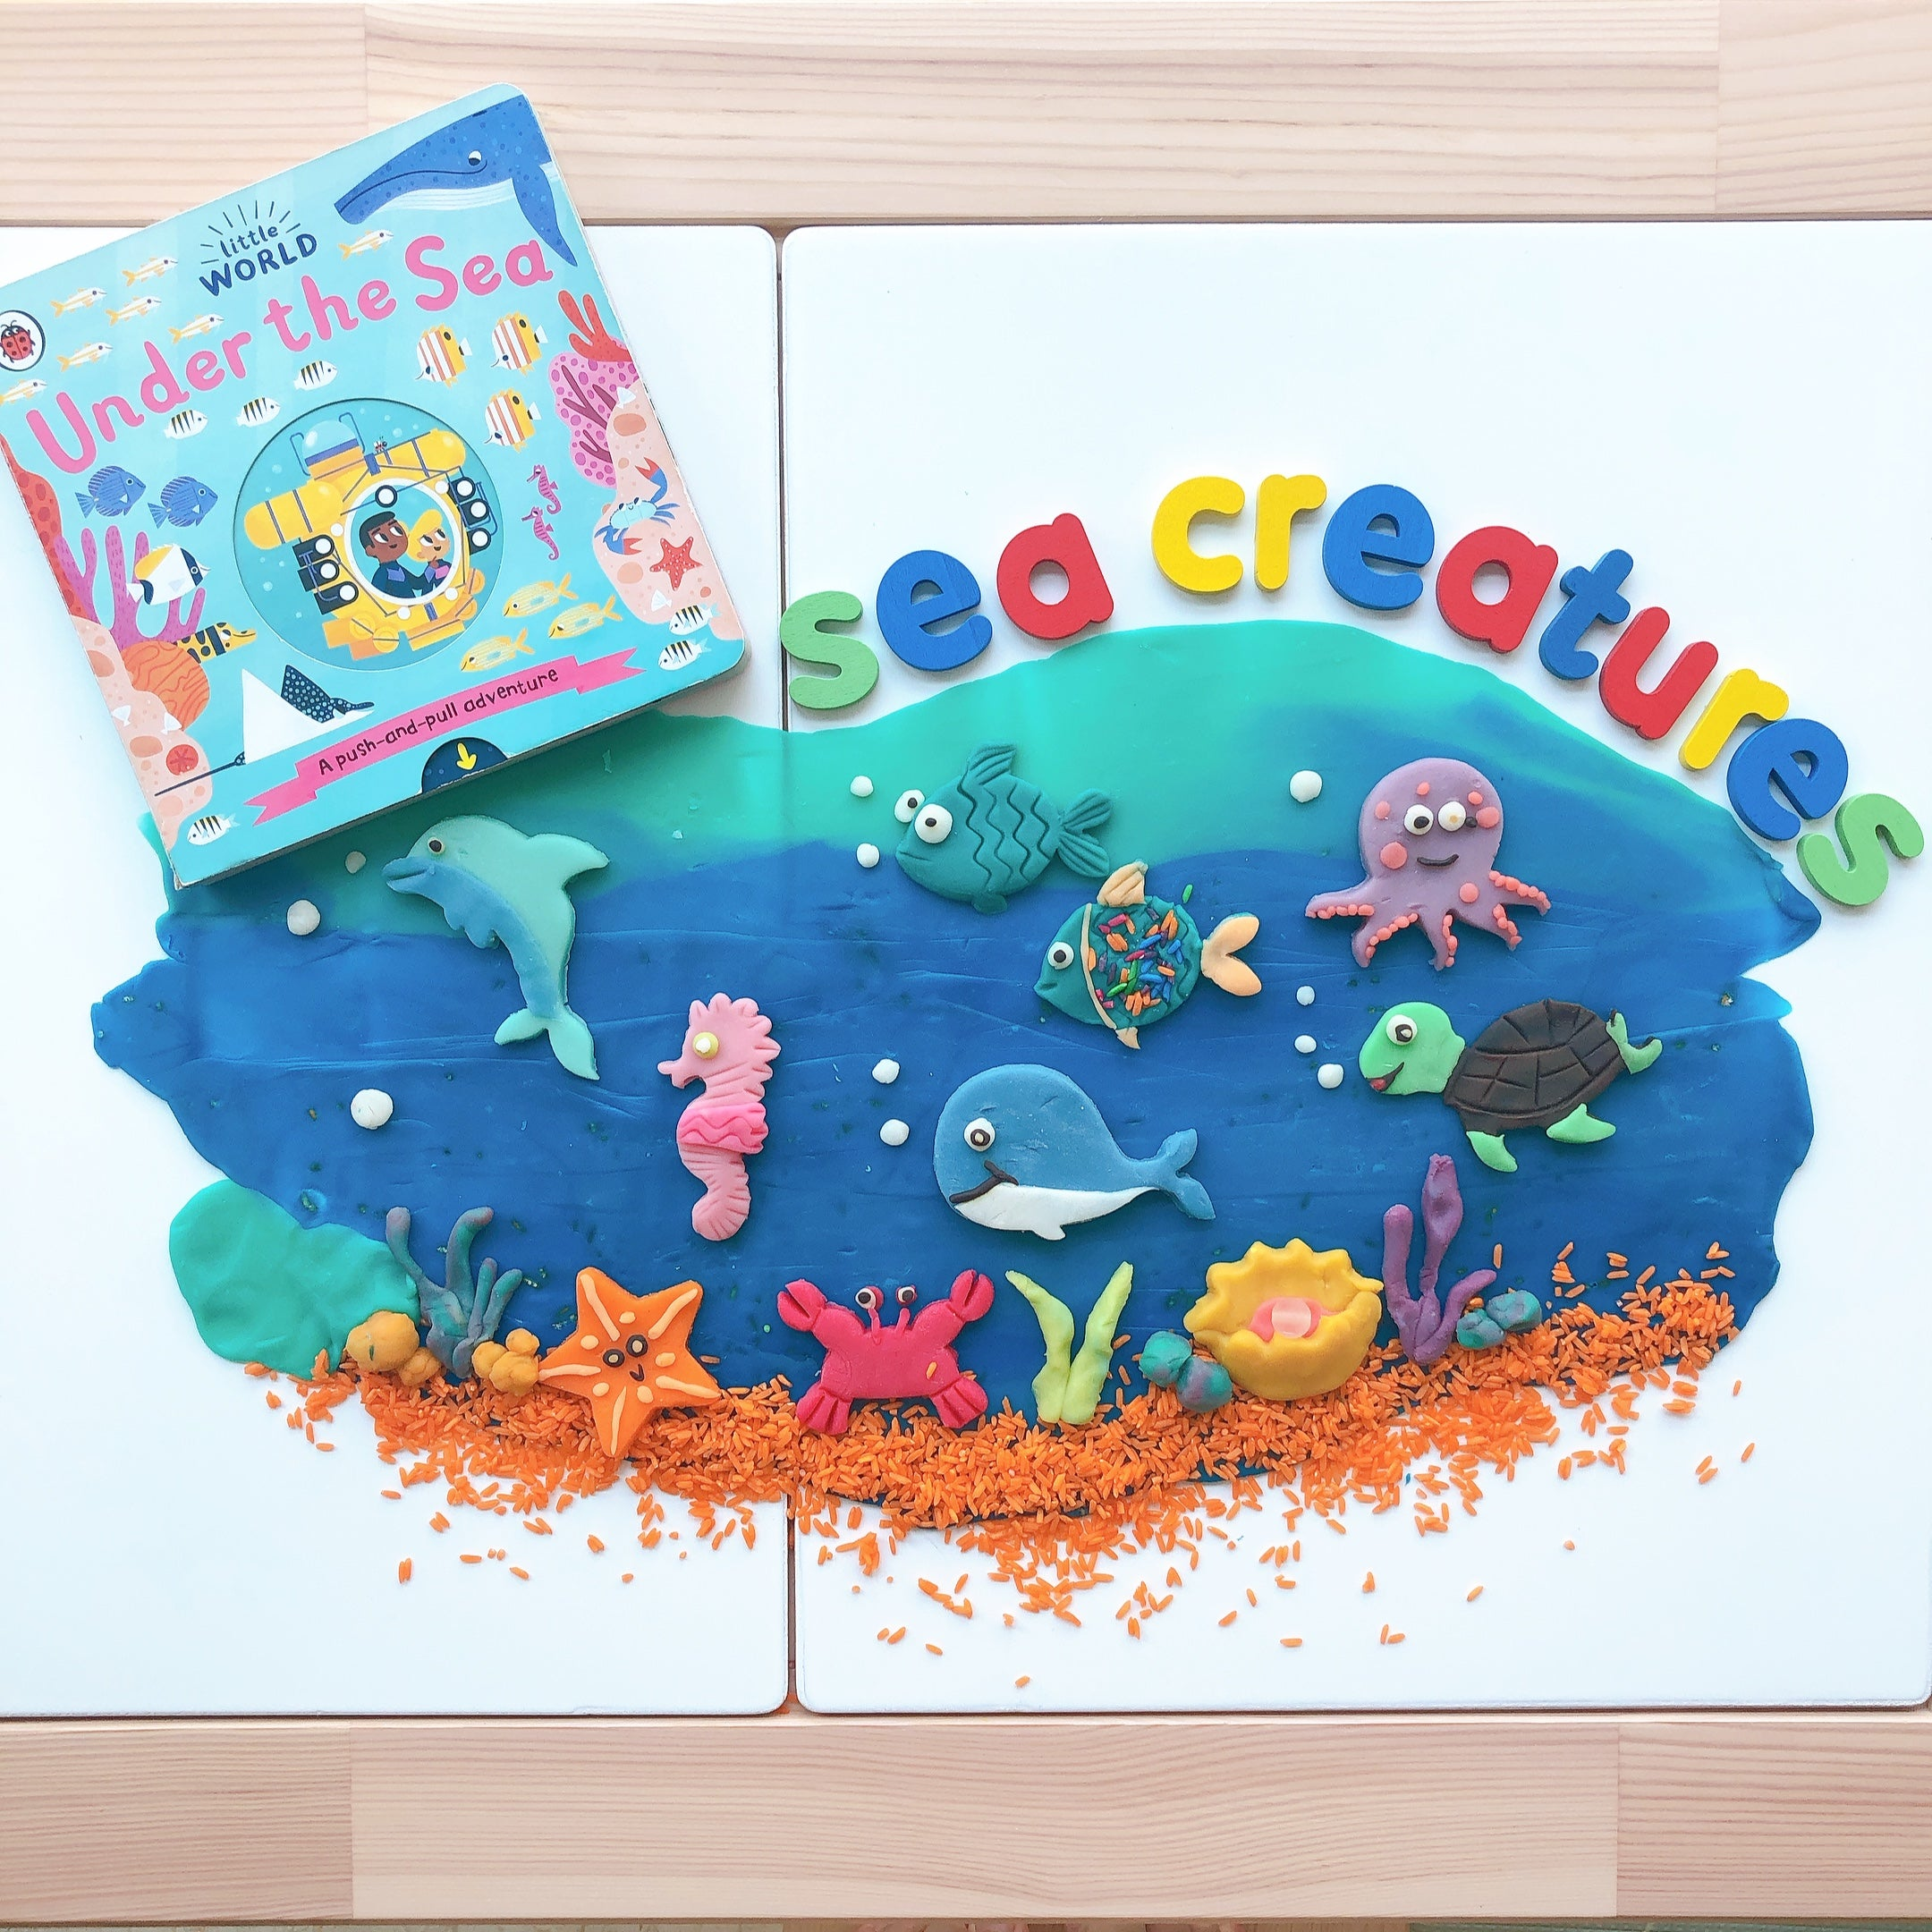 Under The Sea Play Dough Invitation - Our Little Treasures